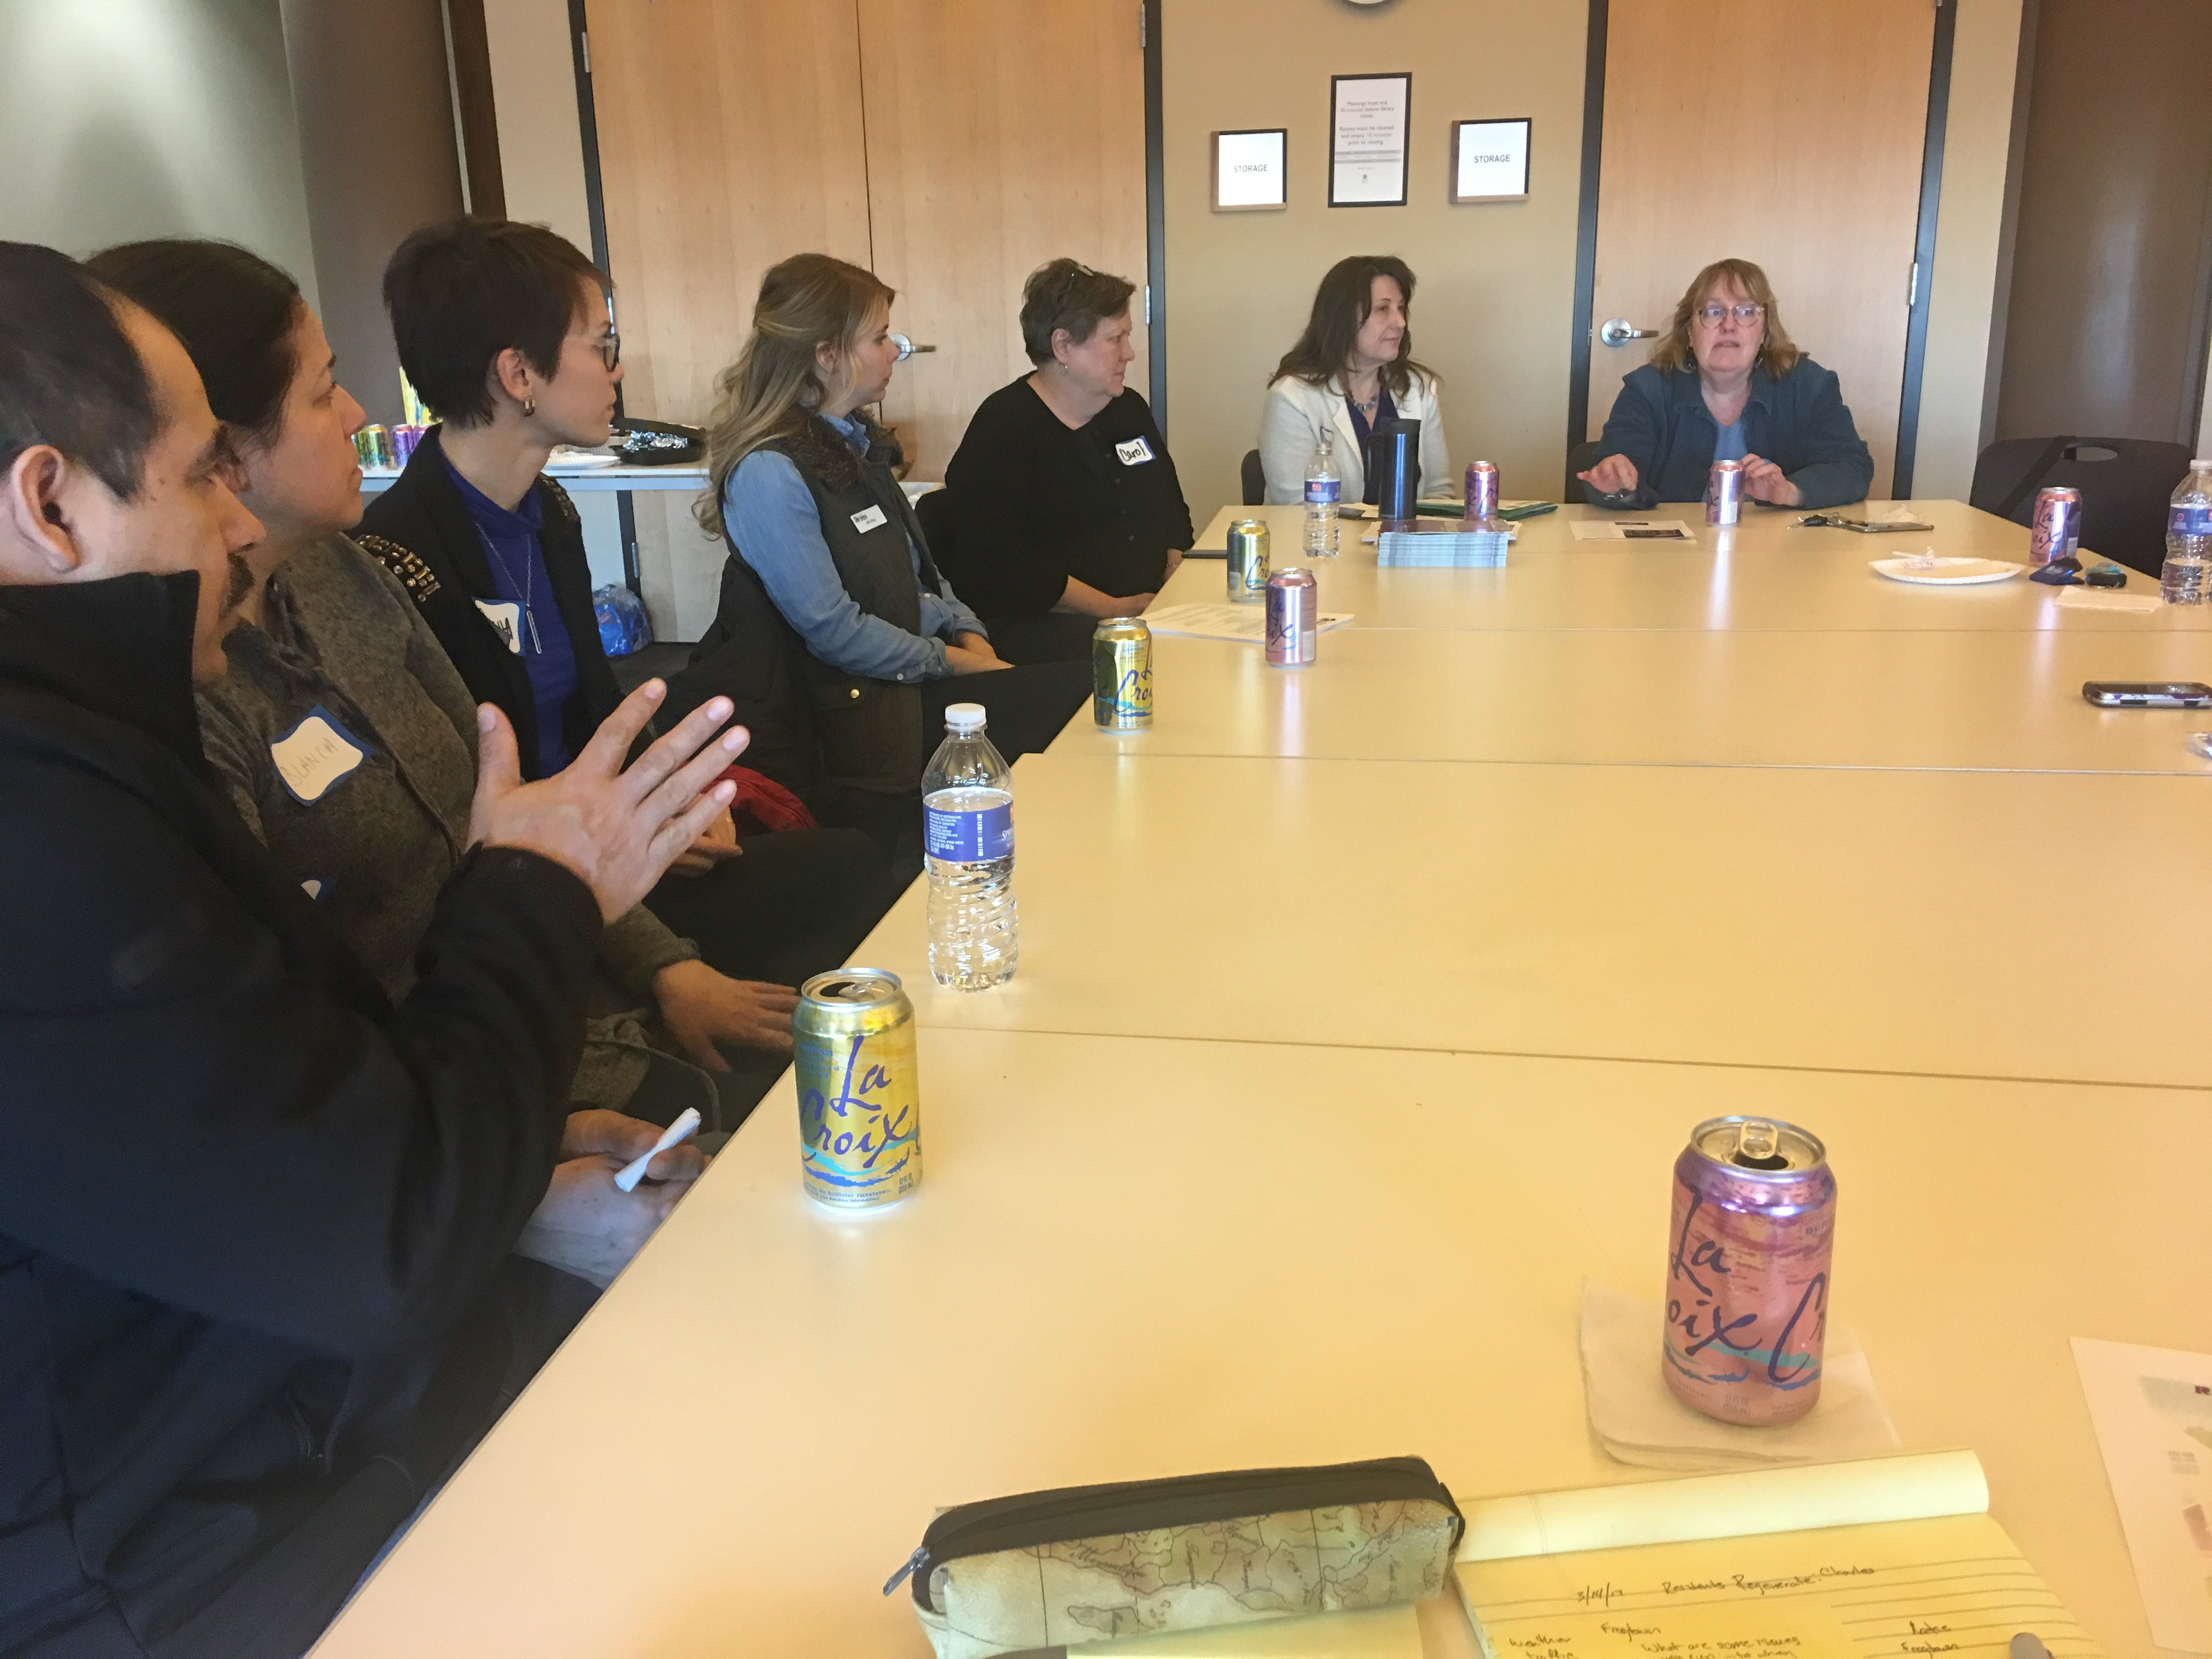 Residence Regenerate meeting with community partners and residents